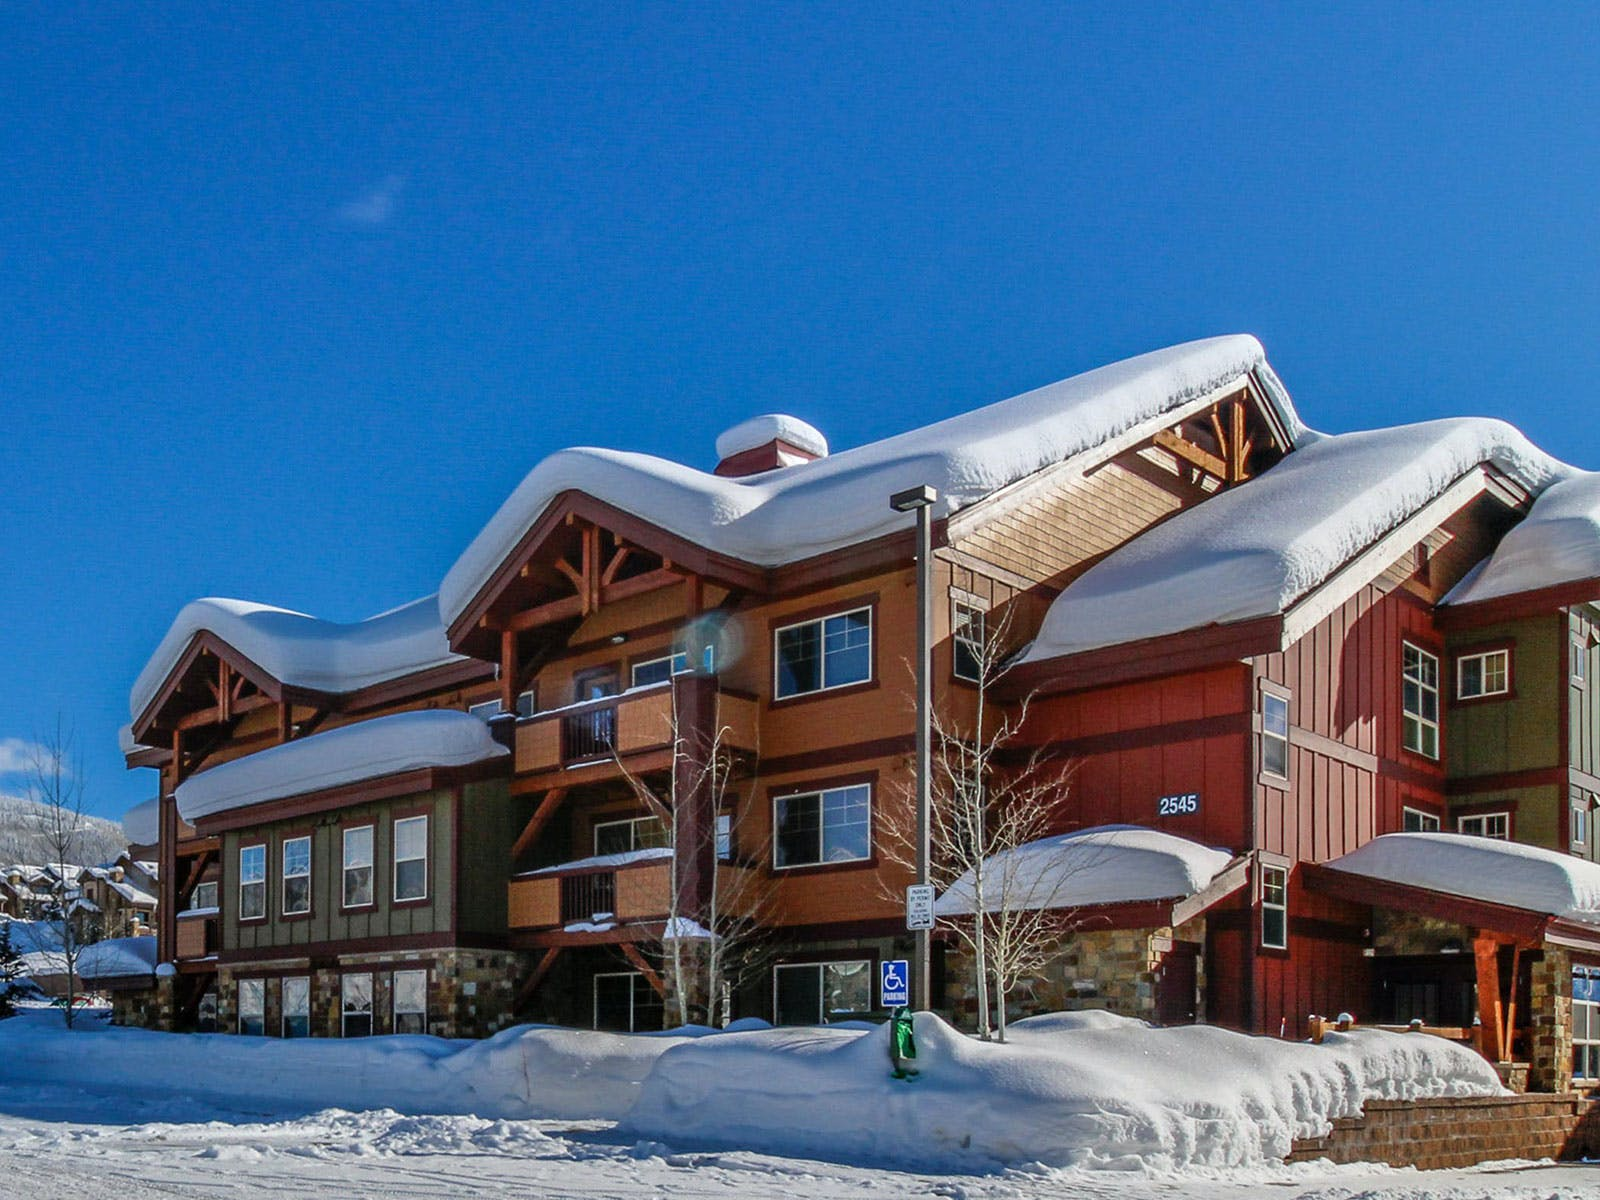 A condo building with ski in, ski out units in Steamboat Springs, CO